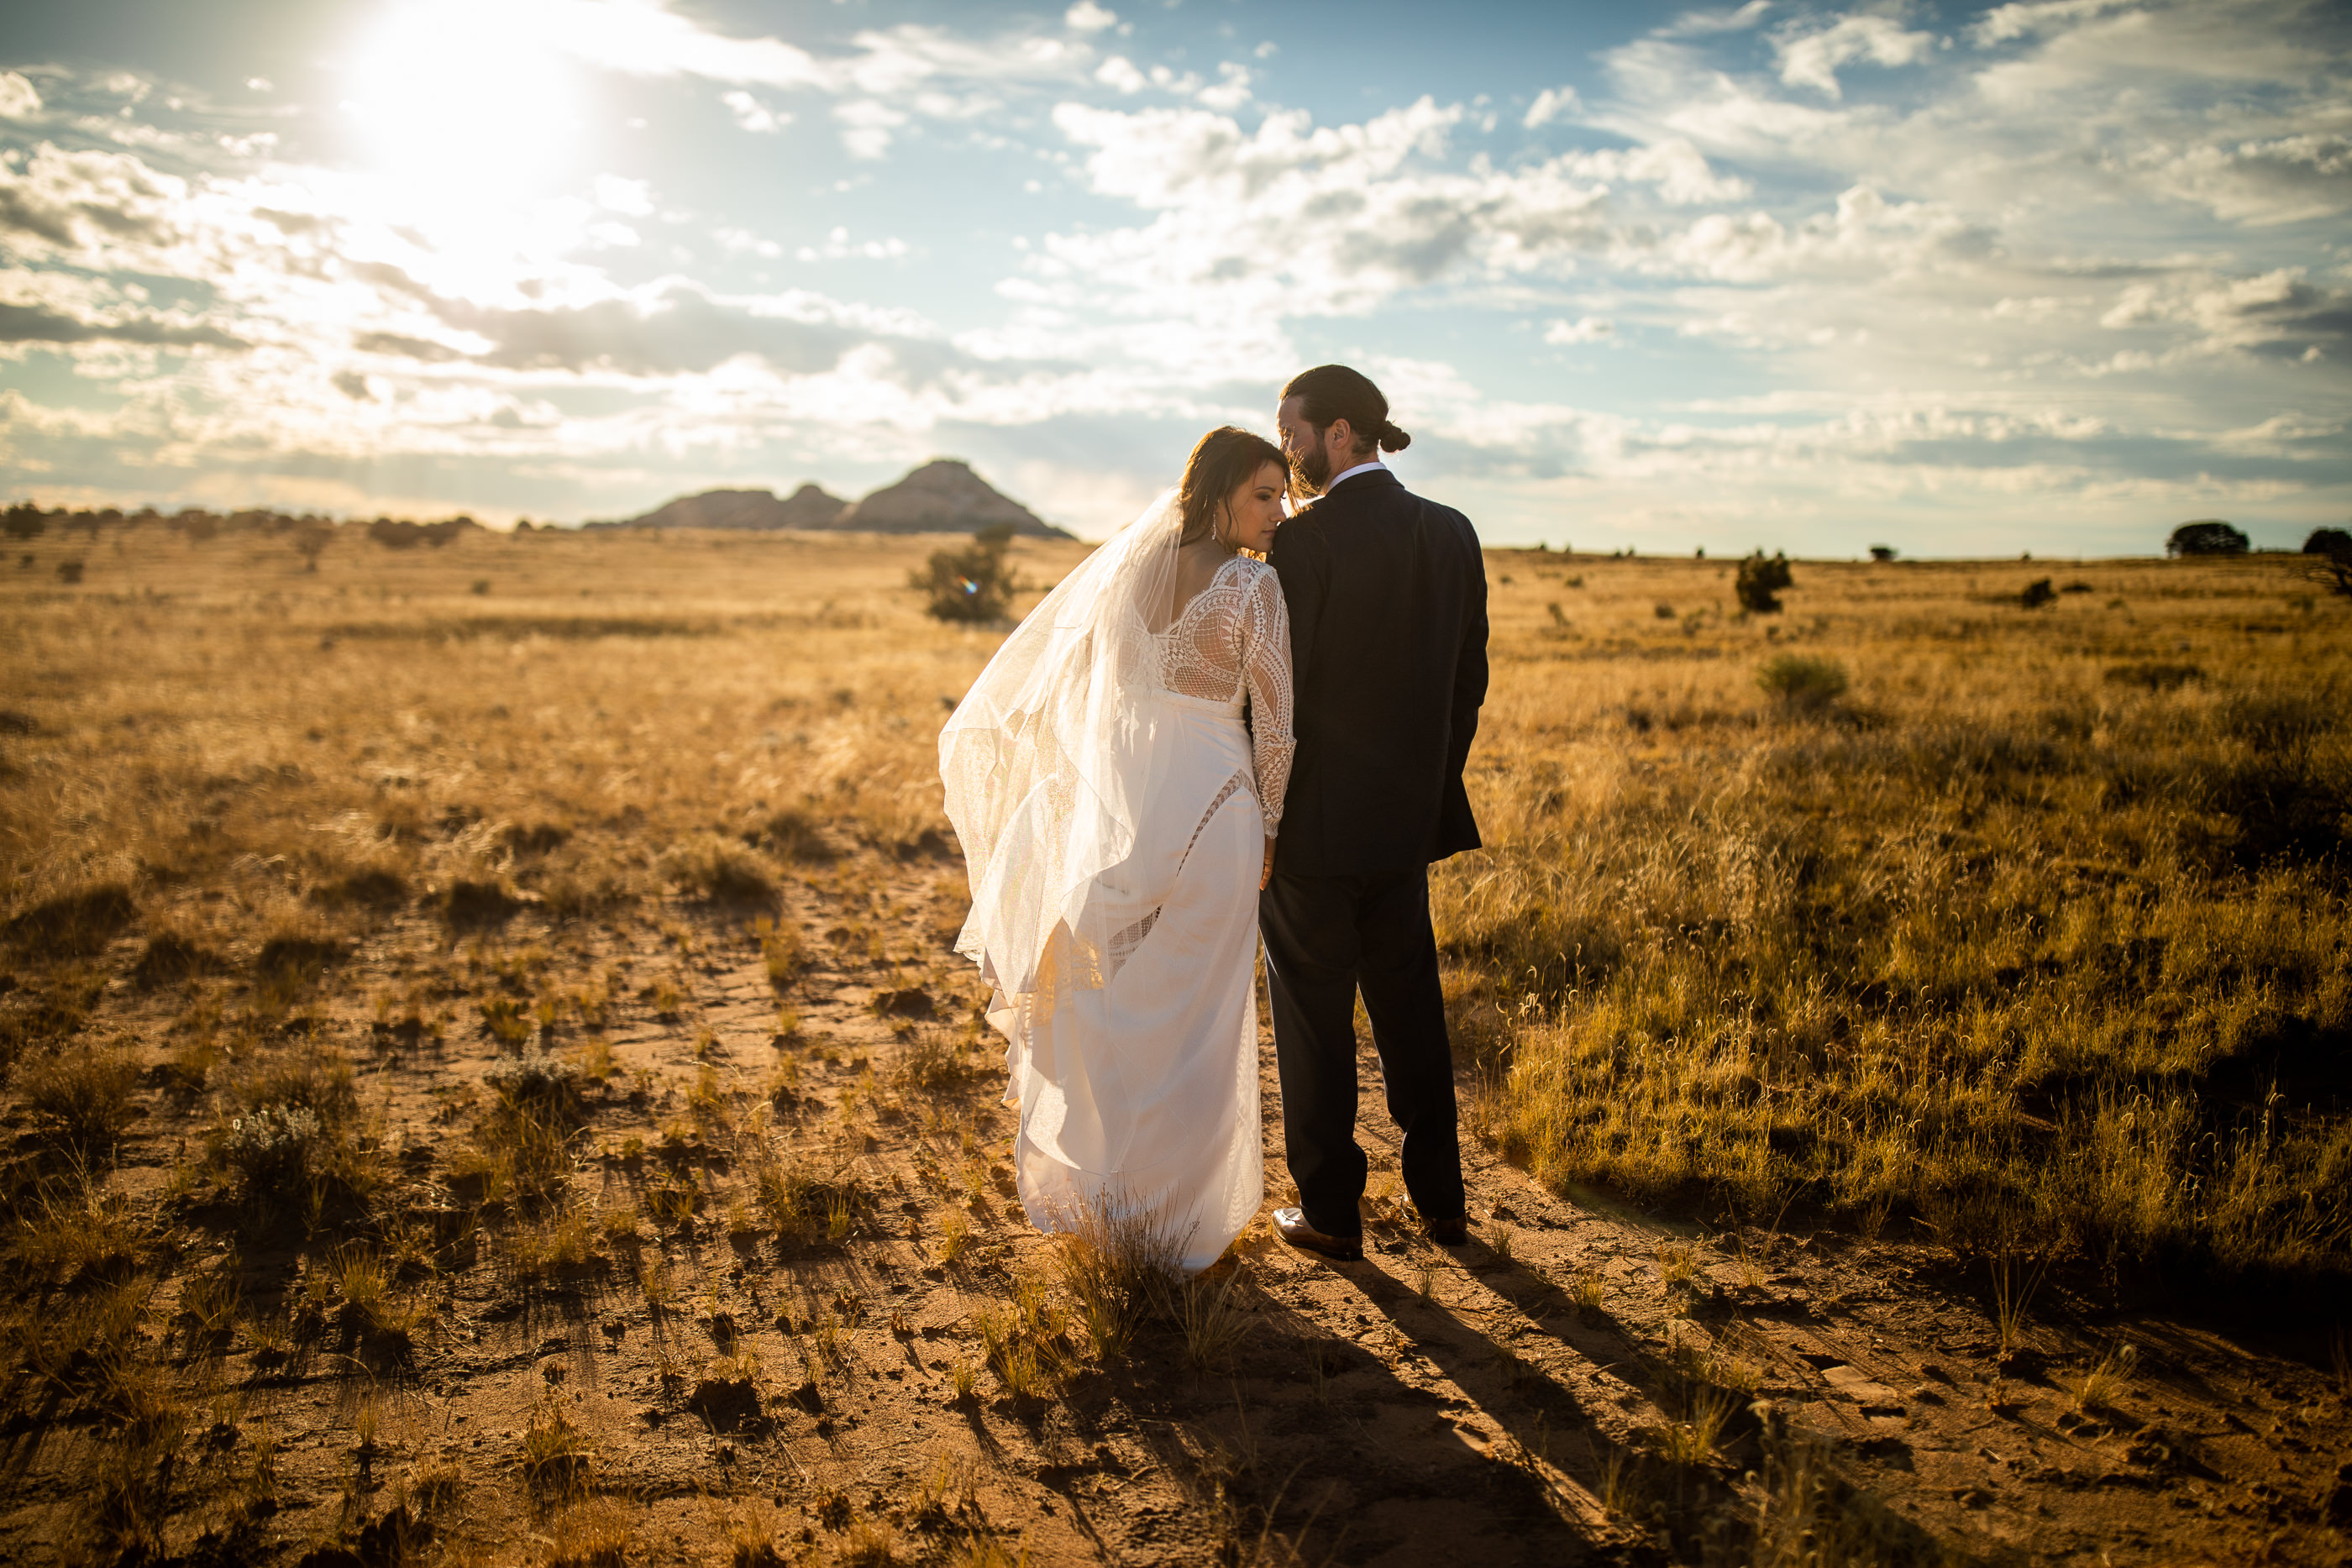 Planning a Destination Wedding in Moab